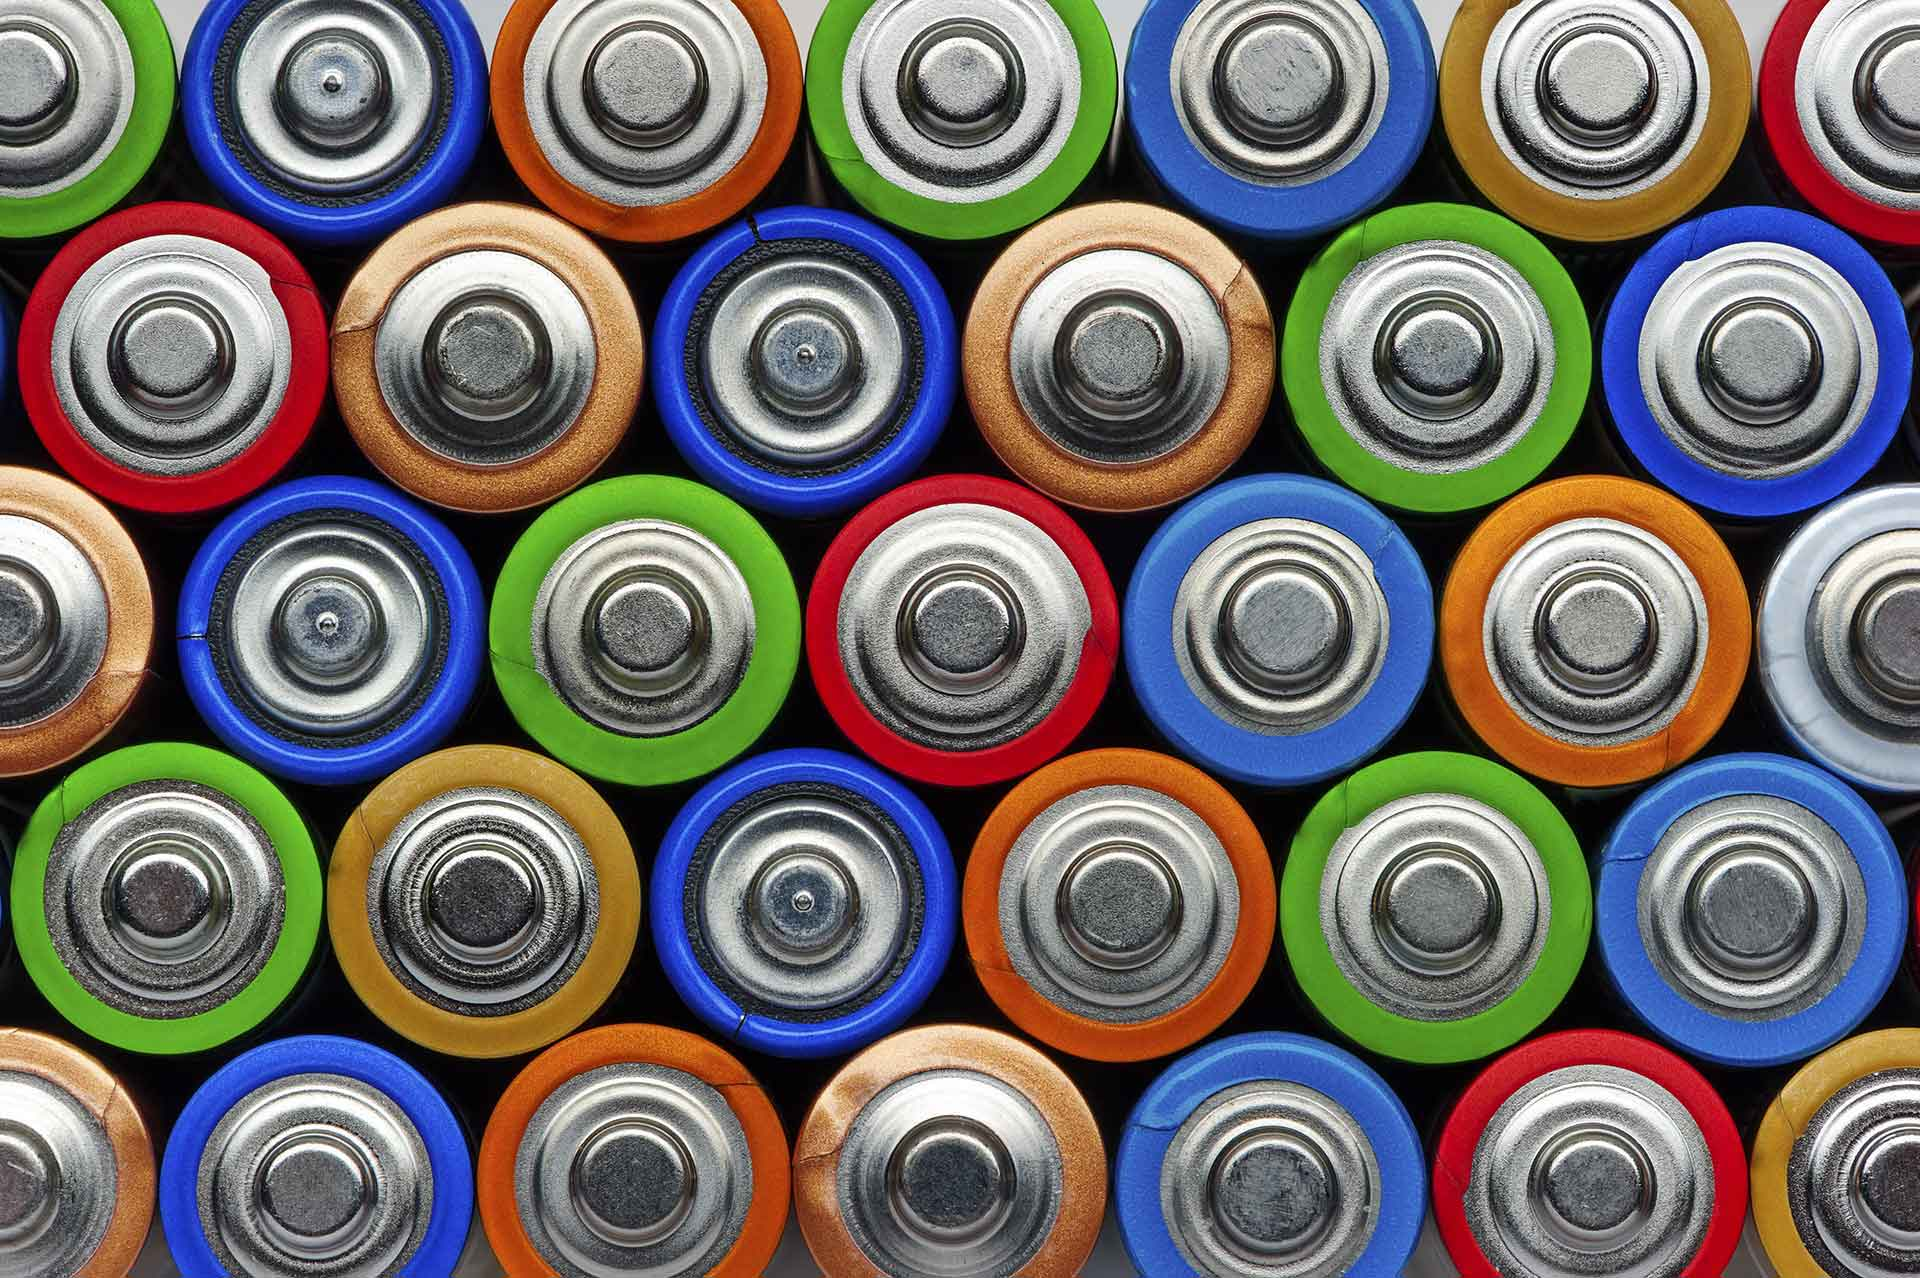 NB-IOT and other cellular LPWA battery life cannot be known until placed in commercial products in real world conditions—which won't happen for years.